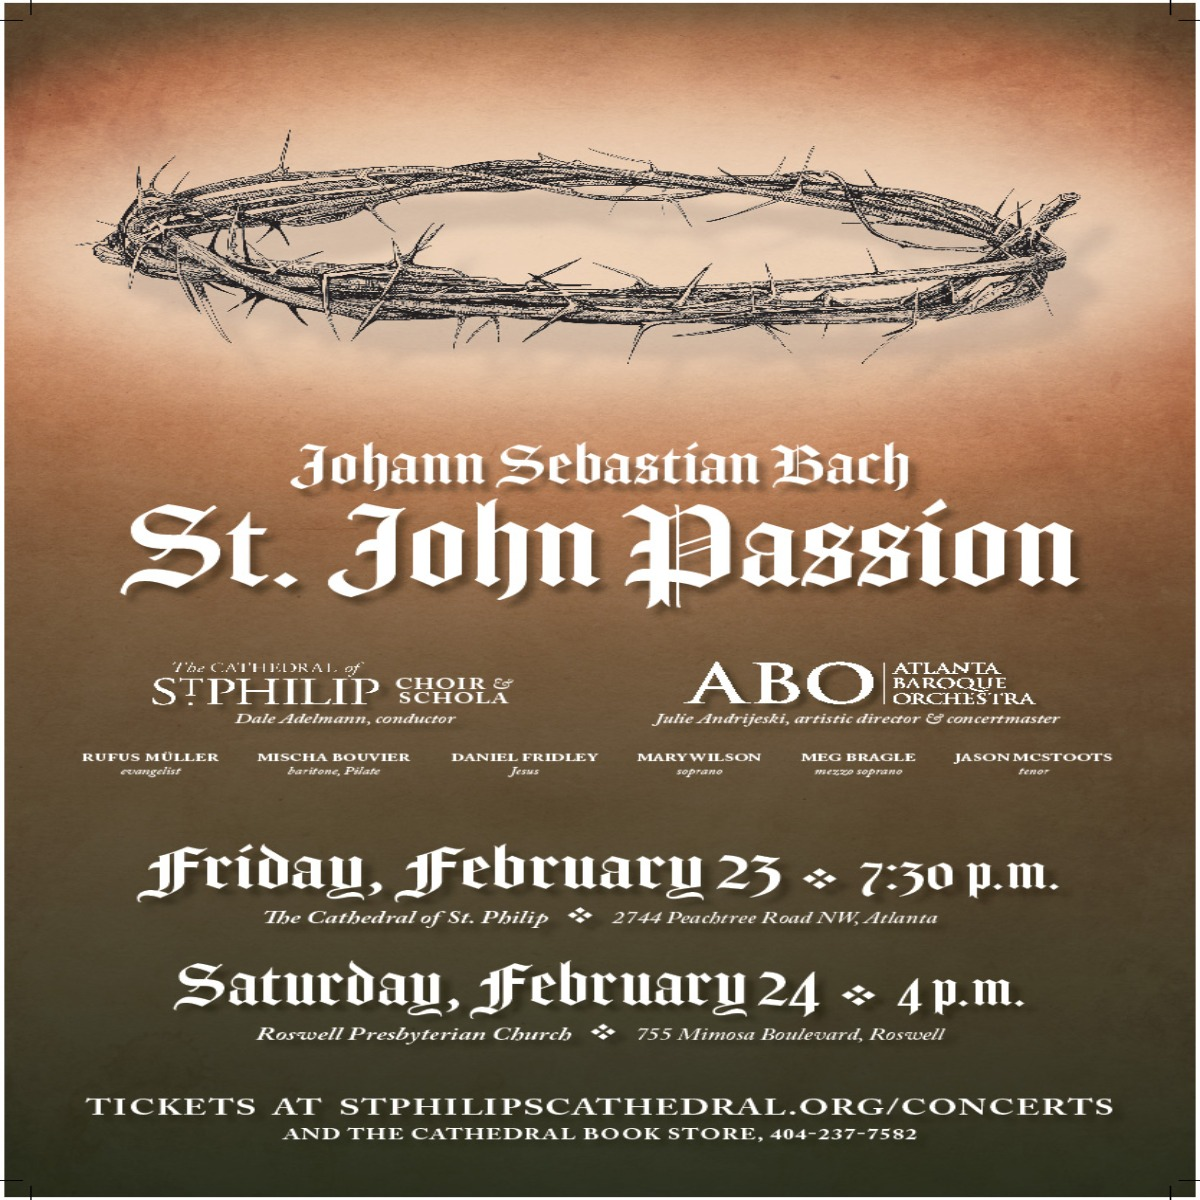 StJohnPassion Poster